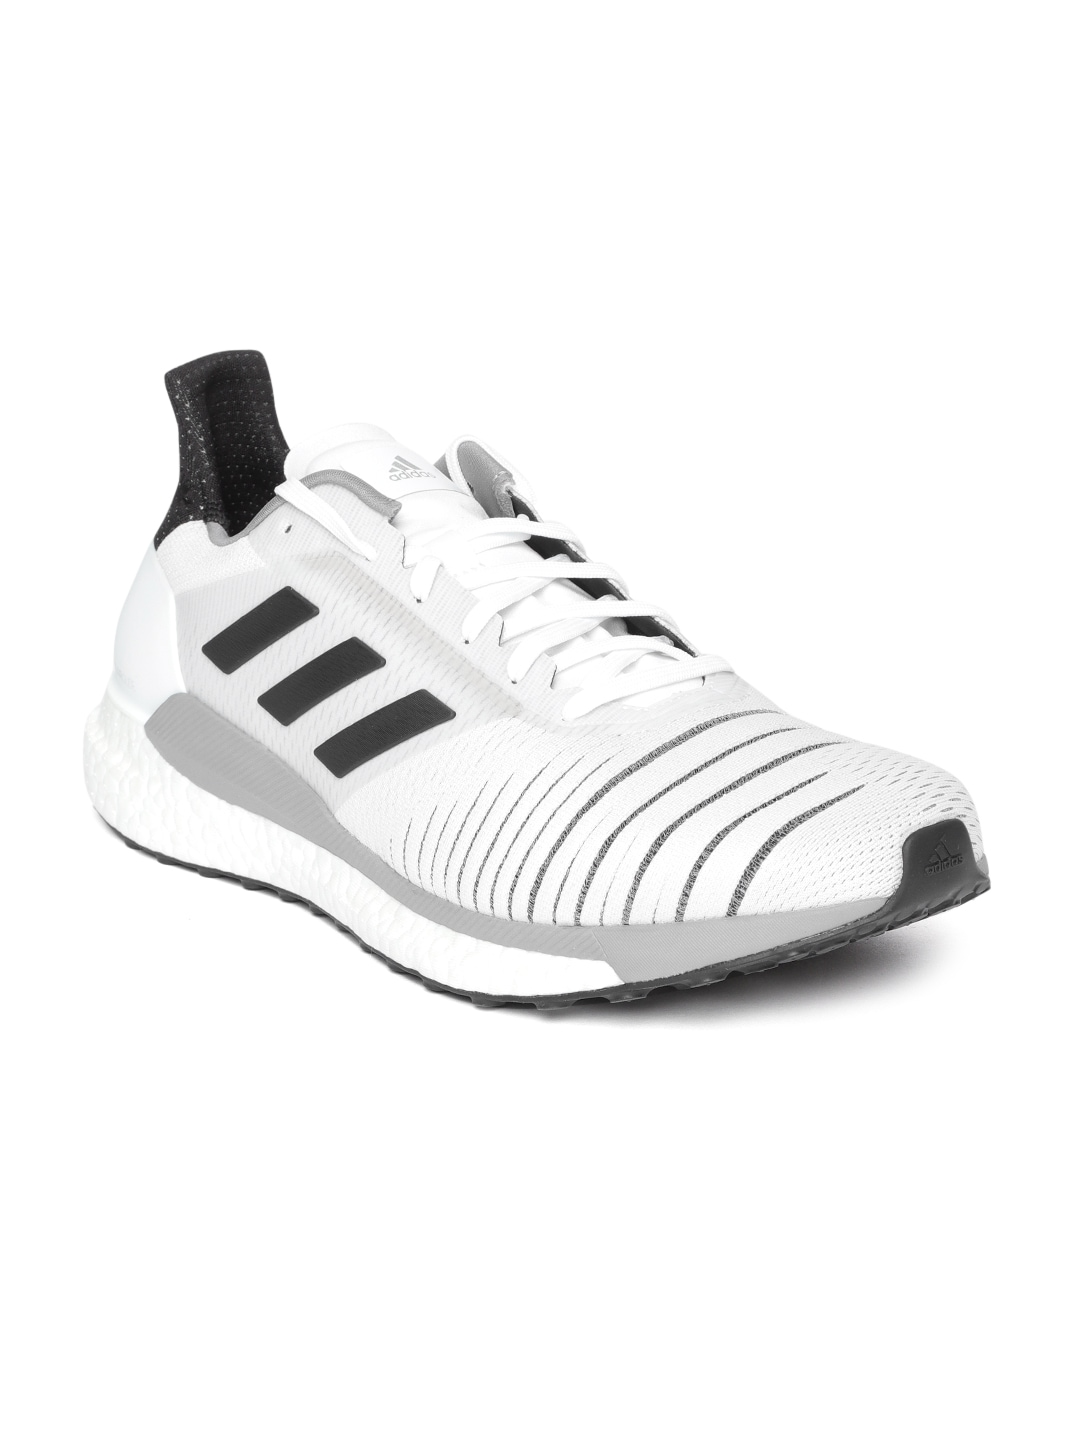 san francisco 0d555 4e751 Sports Shoes - Buy Sport Shoes For Men  Women Online  Myntra